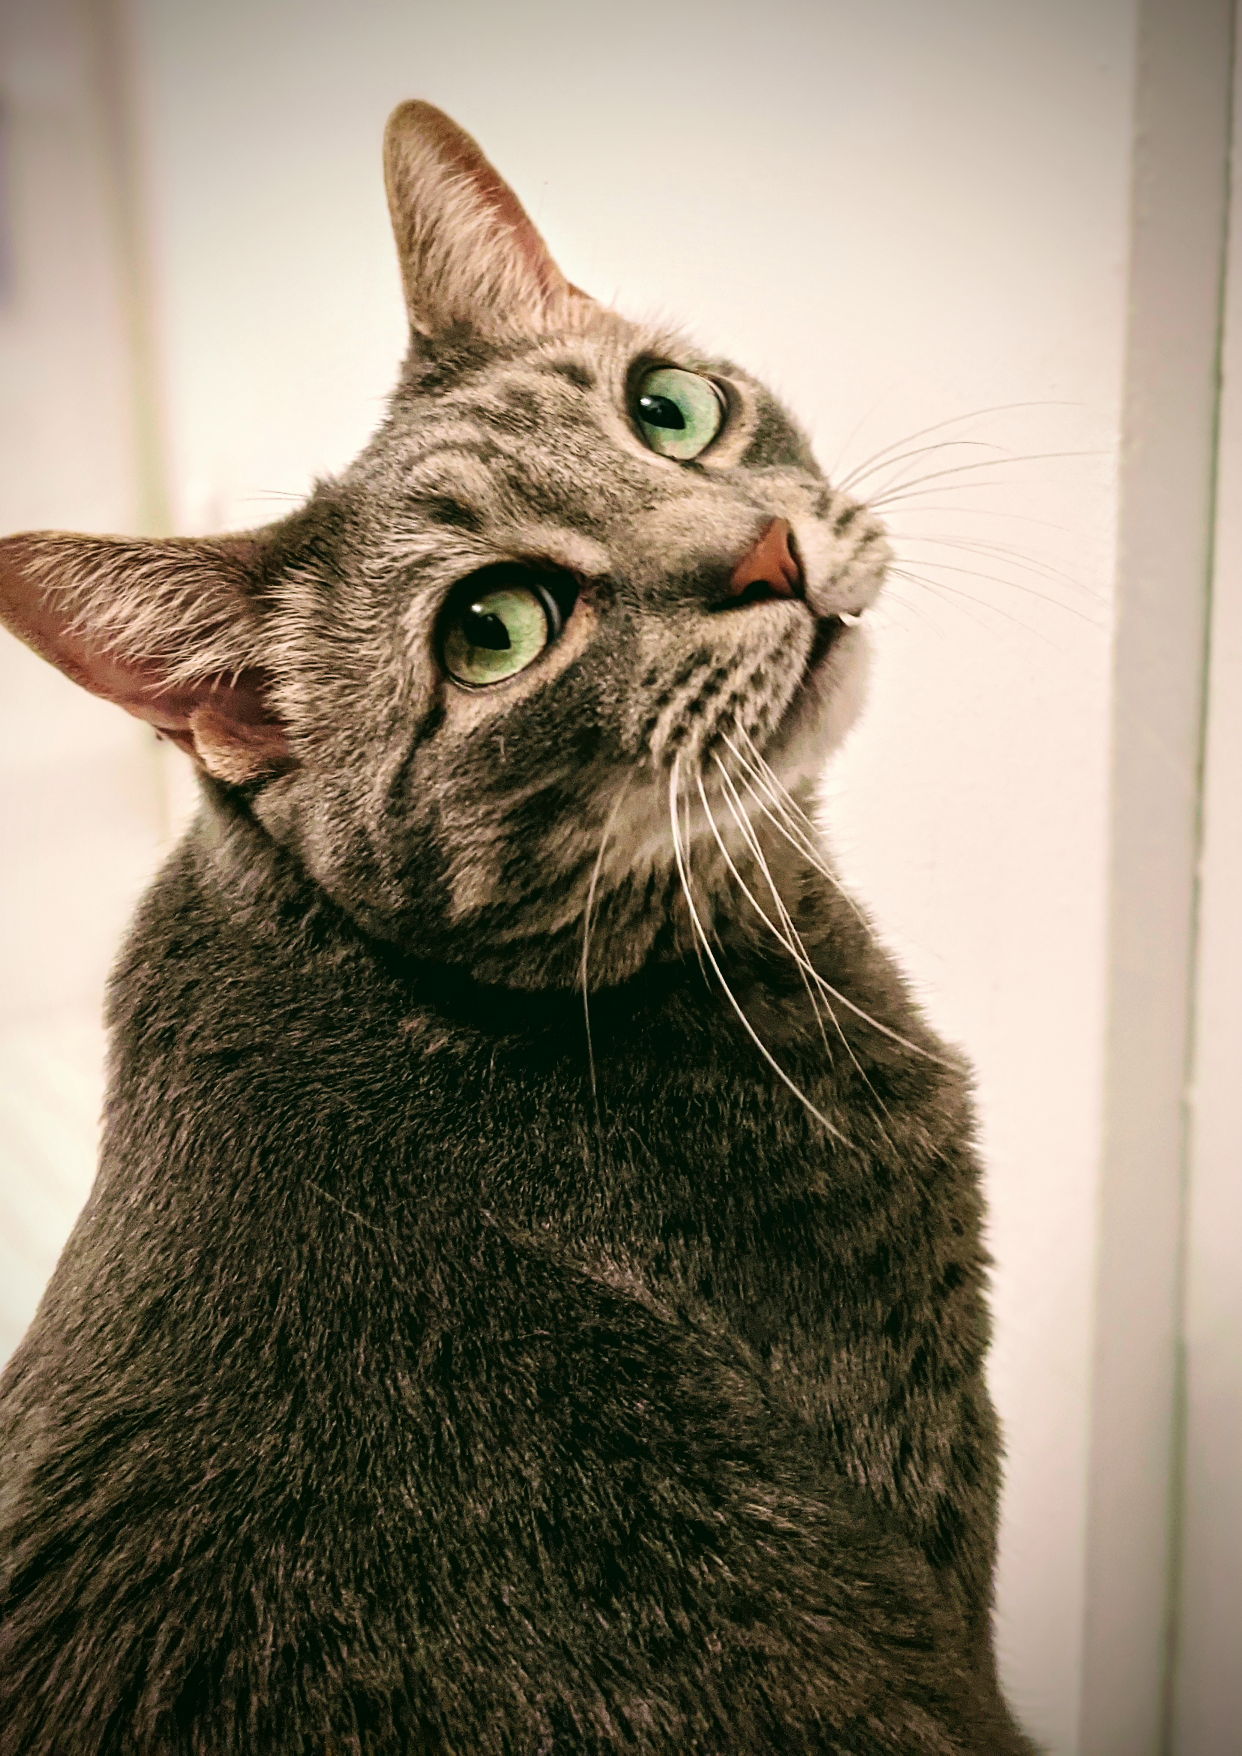 Buddy the Cat: Handsome and Meowscular